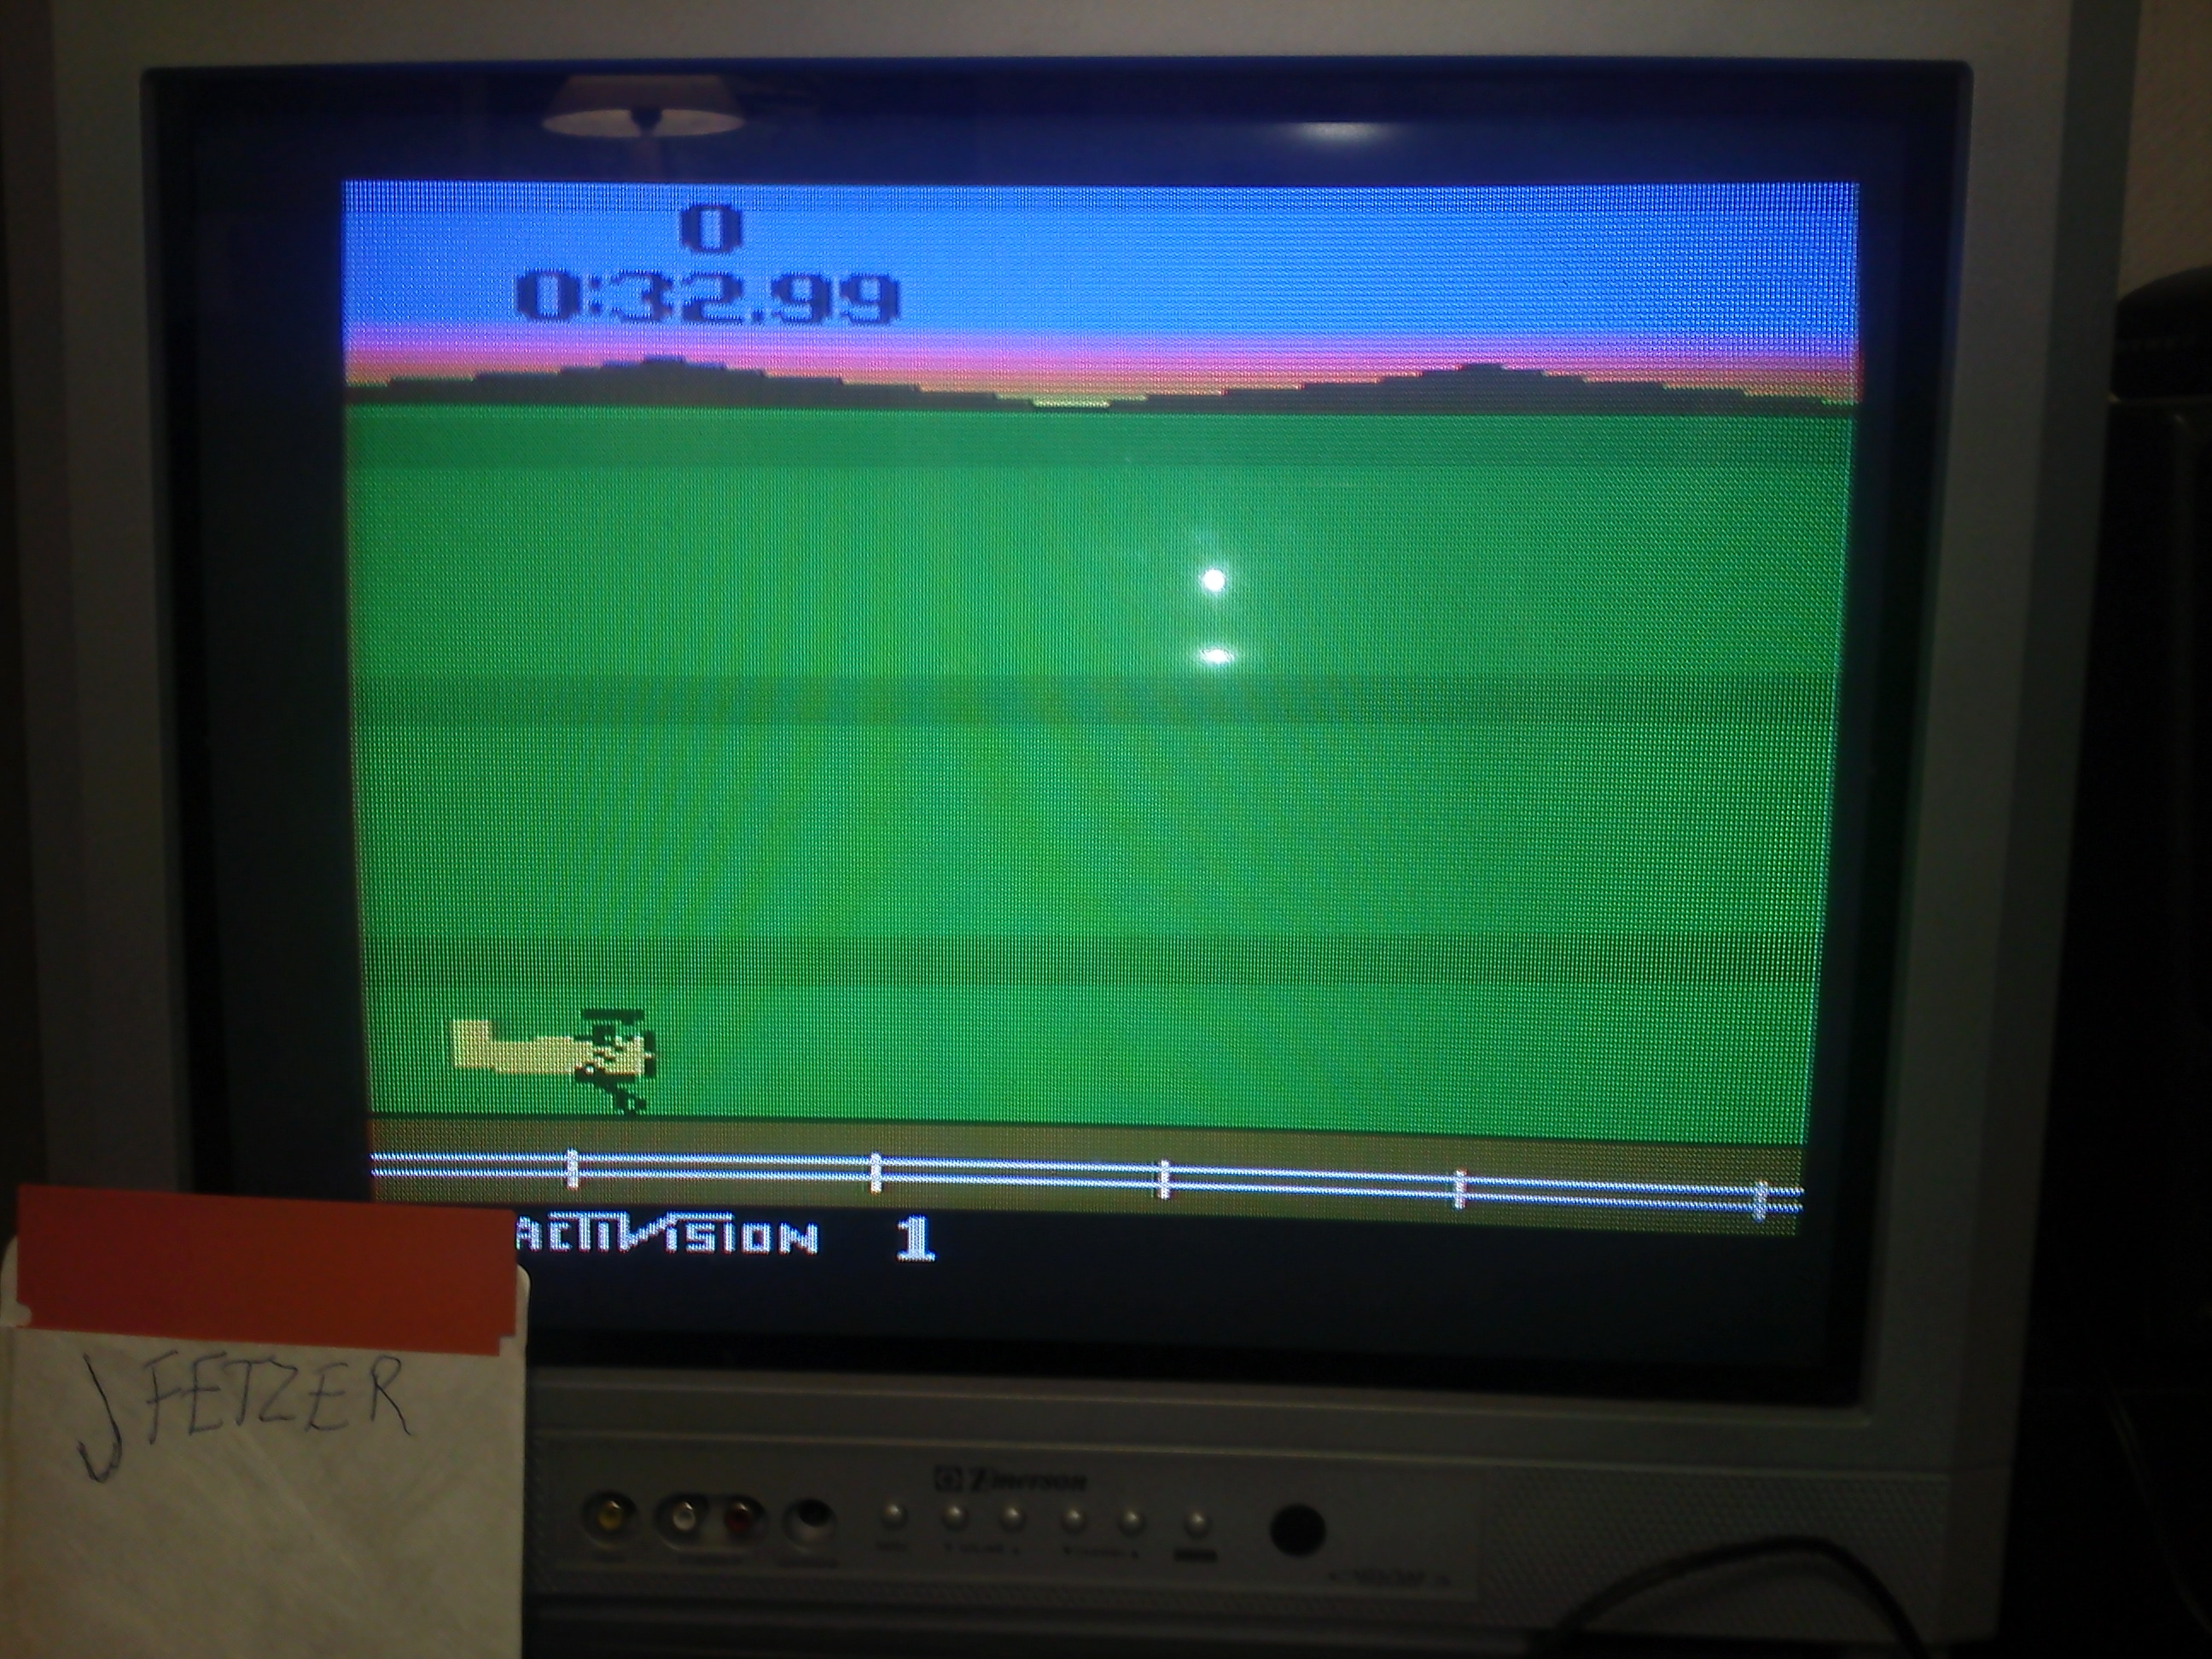 jfetzer: Barnstorming (Atari 2600 Novice/B) 0:00:32.99 points on 2014-12-27 17:41:18